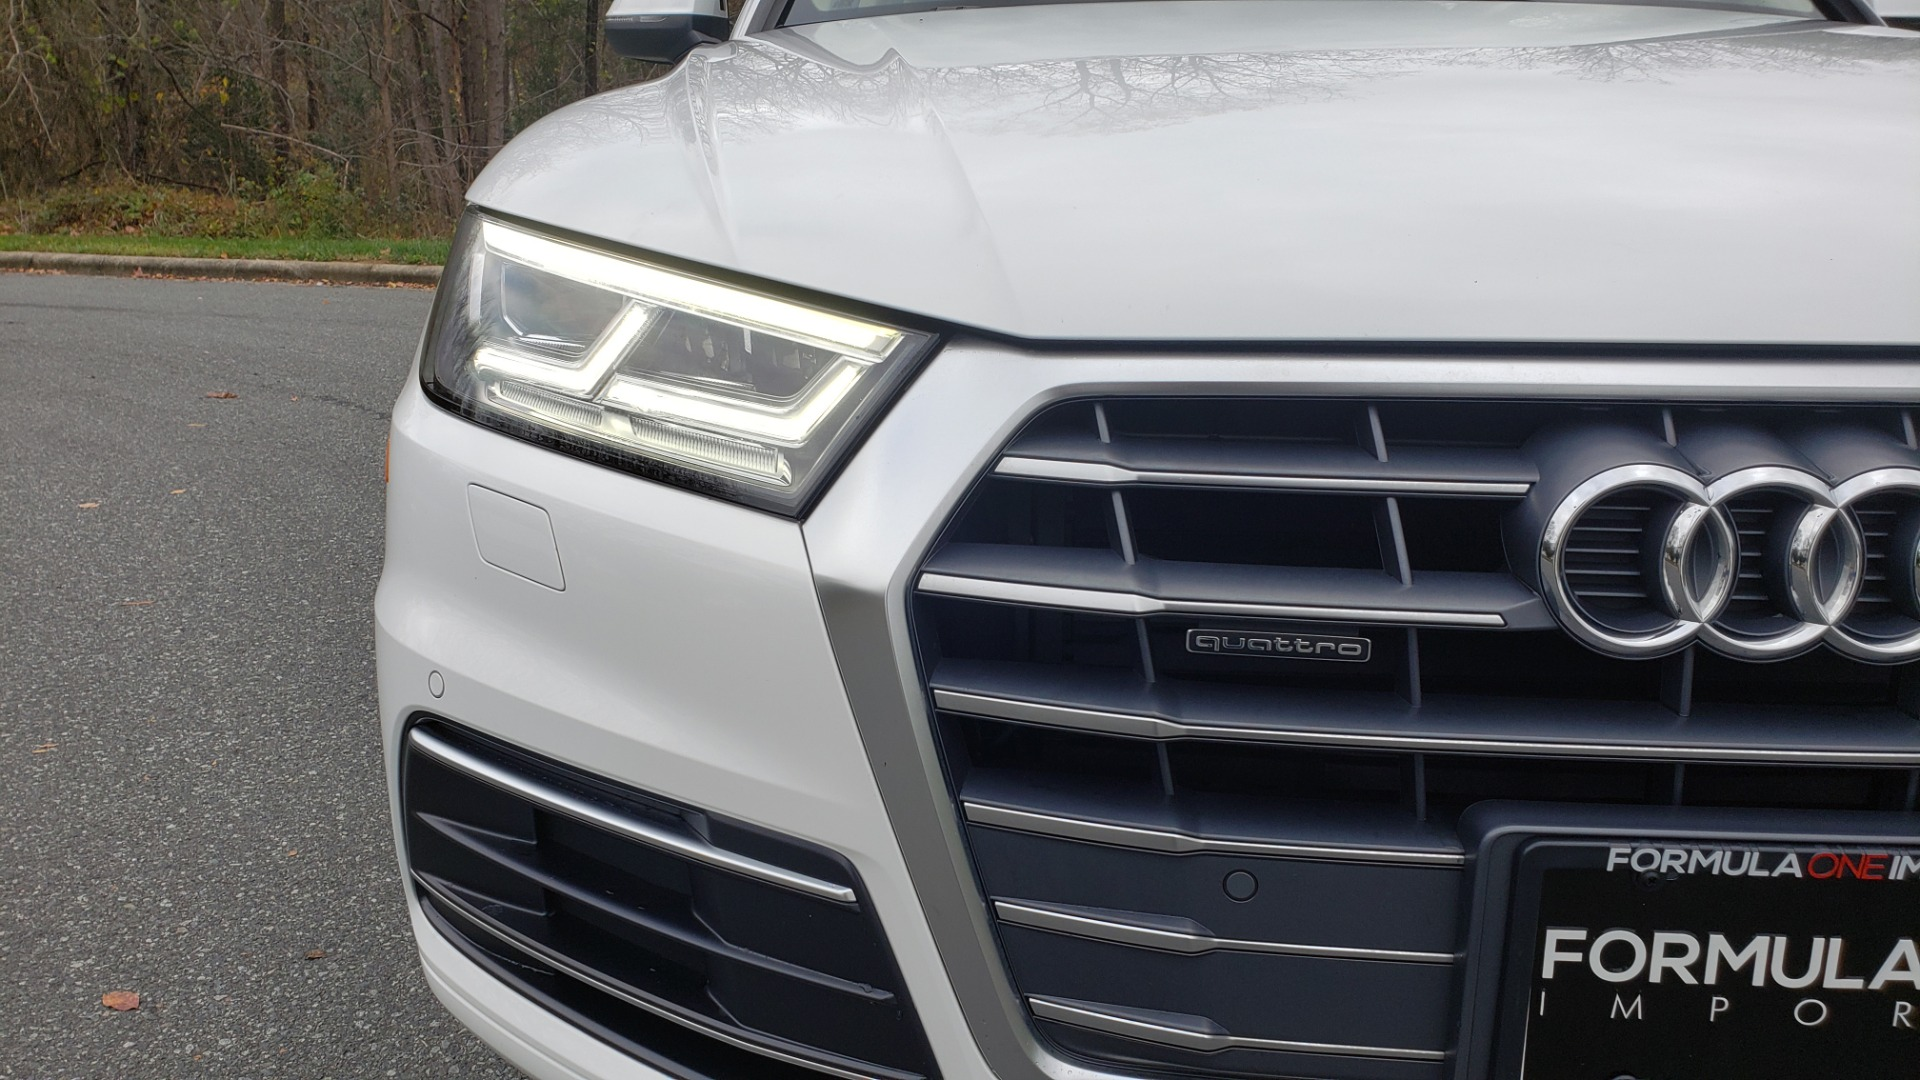 Used 2018 Audi Q5 PREMIUM PLUS / NAV PKG / SUNROOF / CLD WTHR / REARVIEW for sale Sold at Formula Imports in Charlotte NC 28227 21